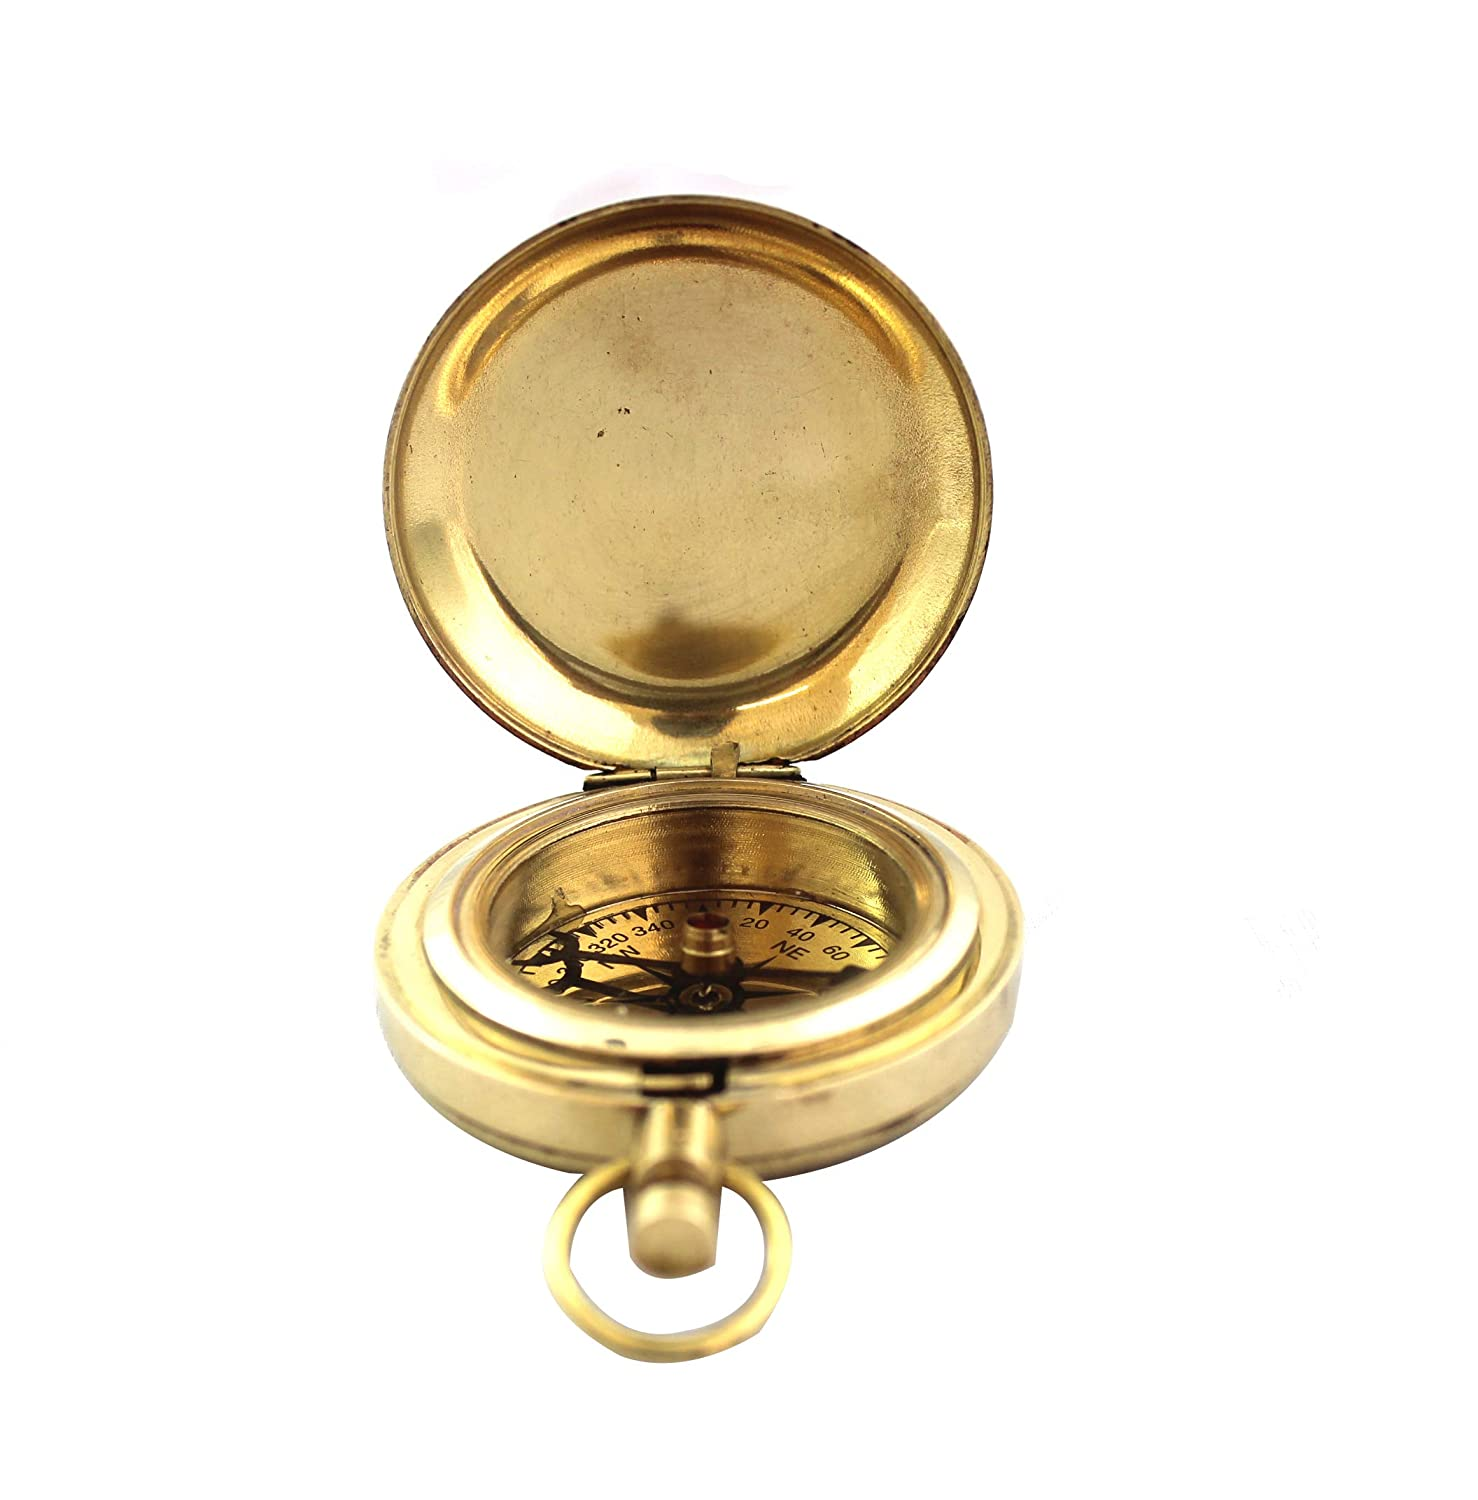 Nautical Collectible Retro Style Compass Decorative Gift Item Brass Finish Compass Brass Finish